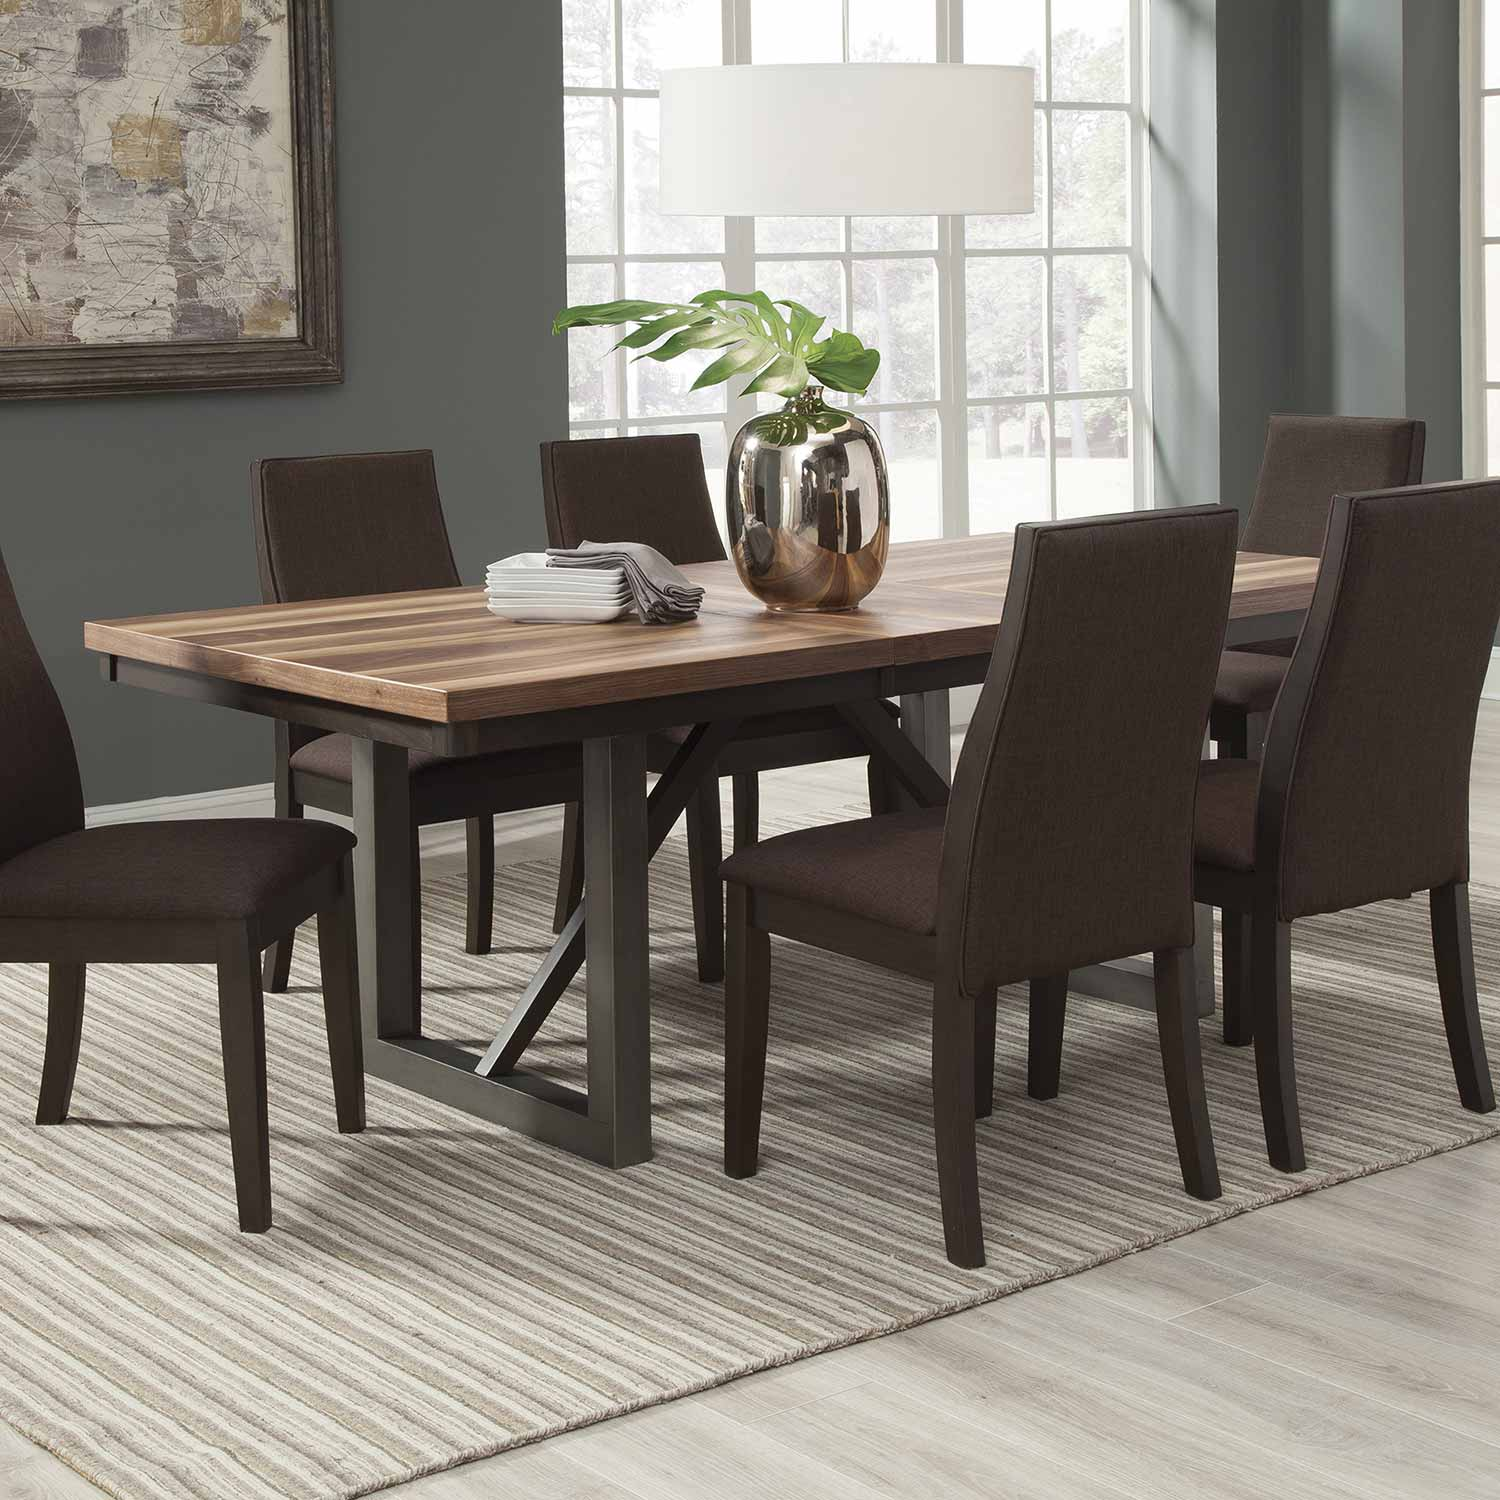 Coaster Spring Creek Rectangular Dining Table with